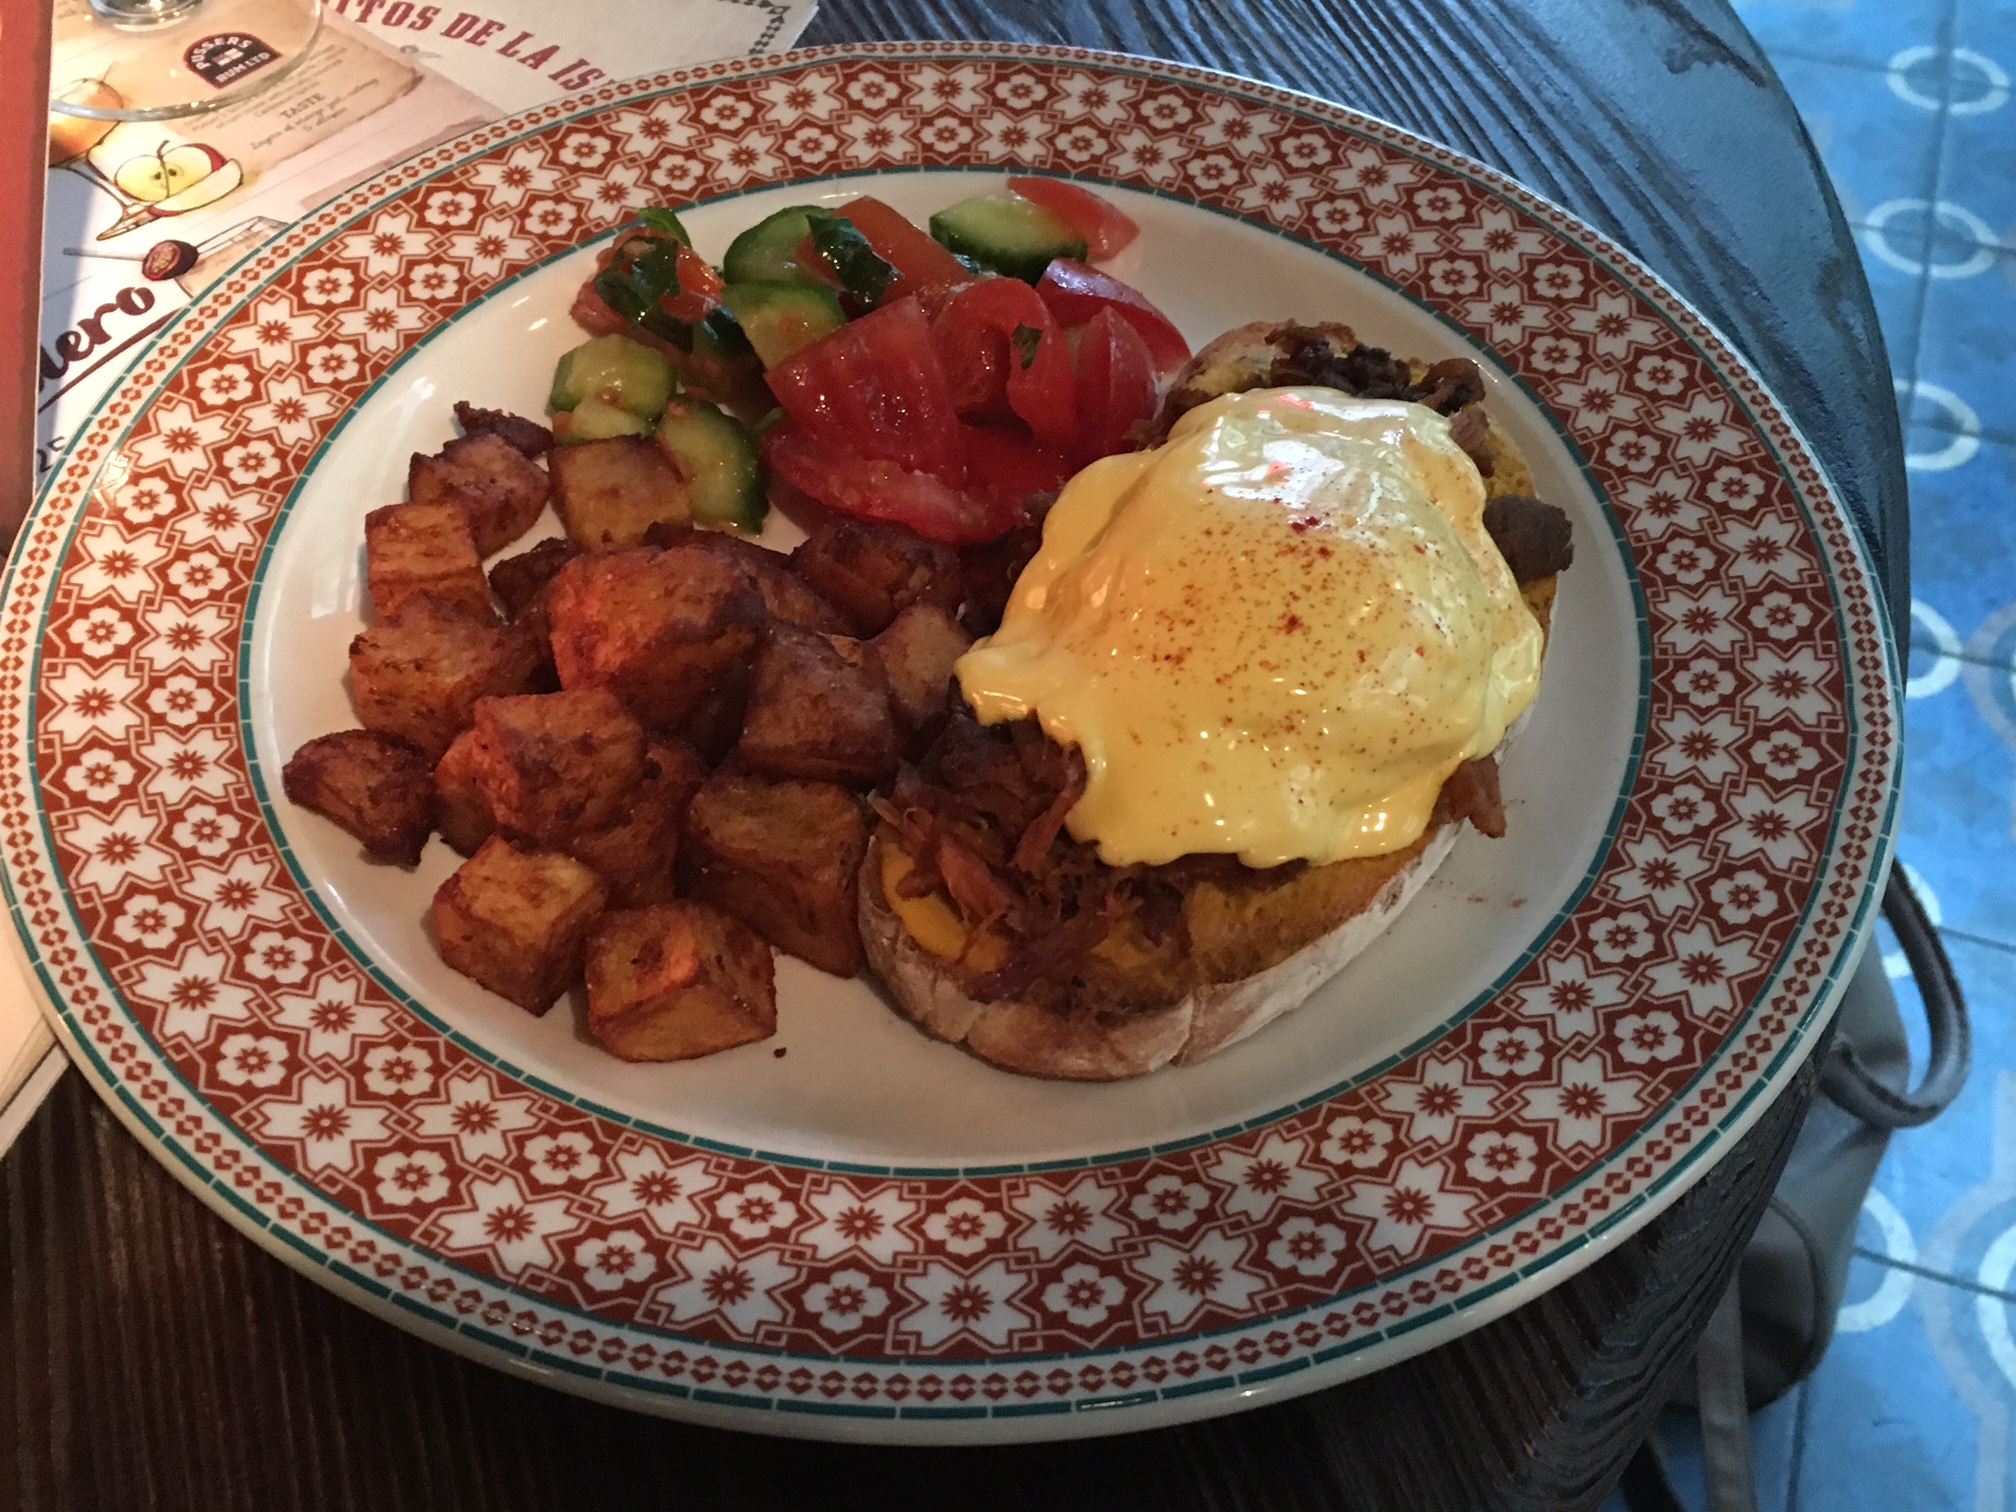 Cuban Benedict (eggs benedict with pulled pork), avocado, tomato and crispy potatoes